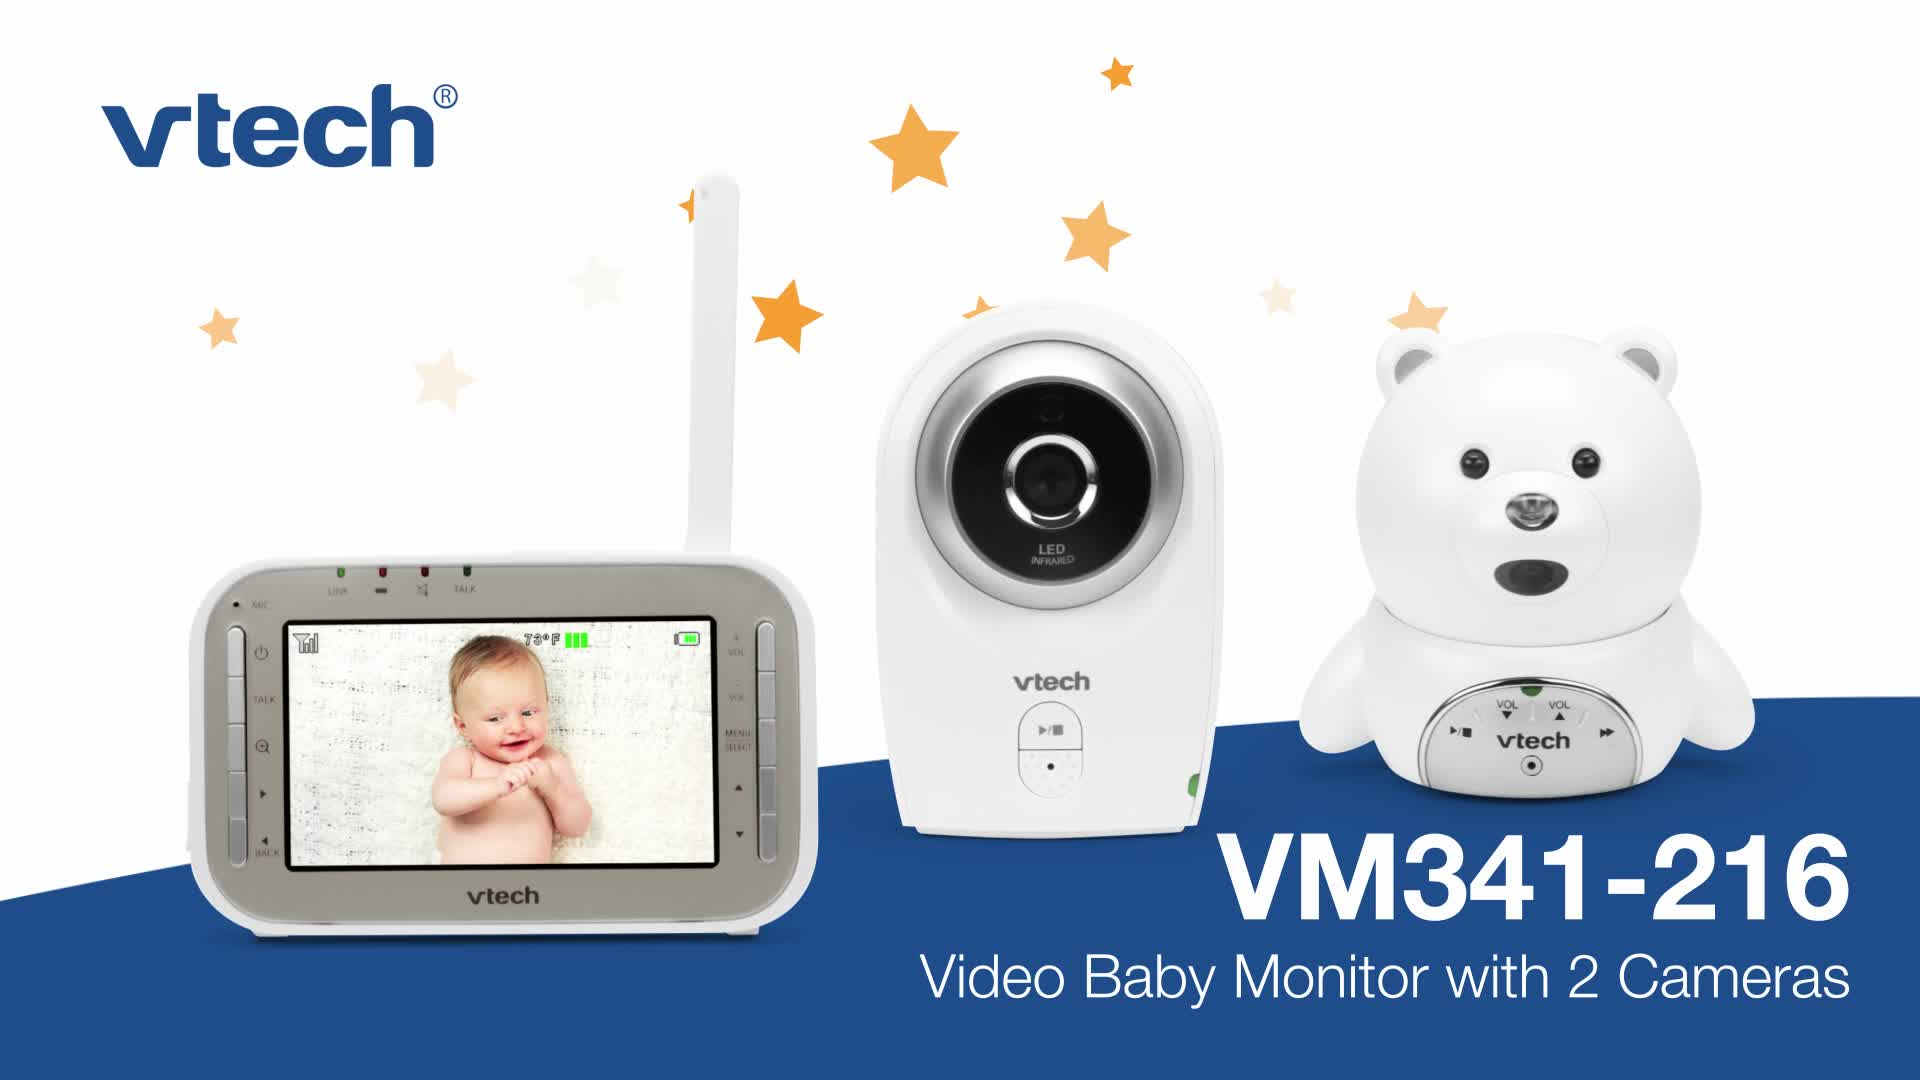 VTech adds new baby monitors to award-winning line